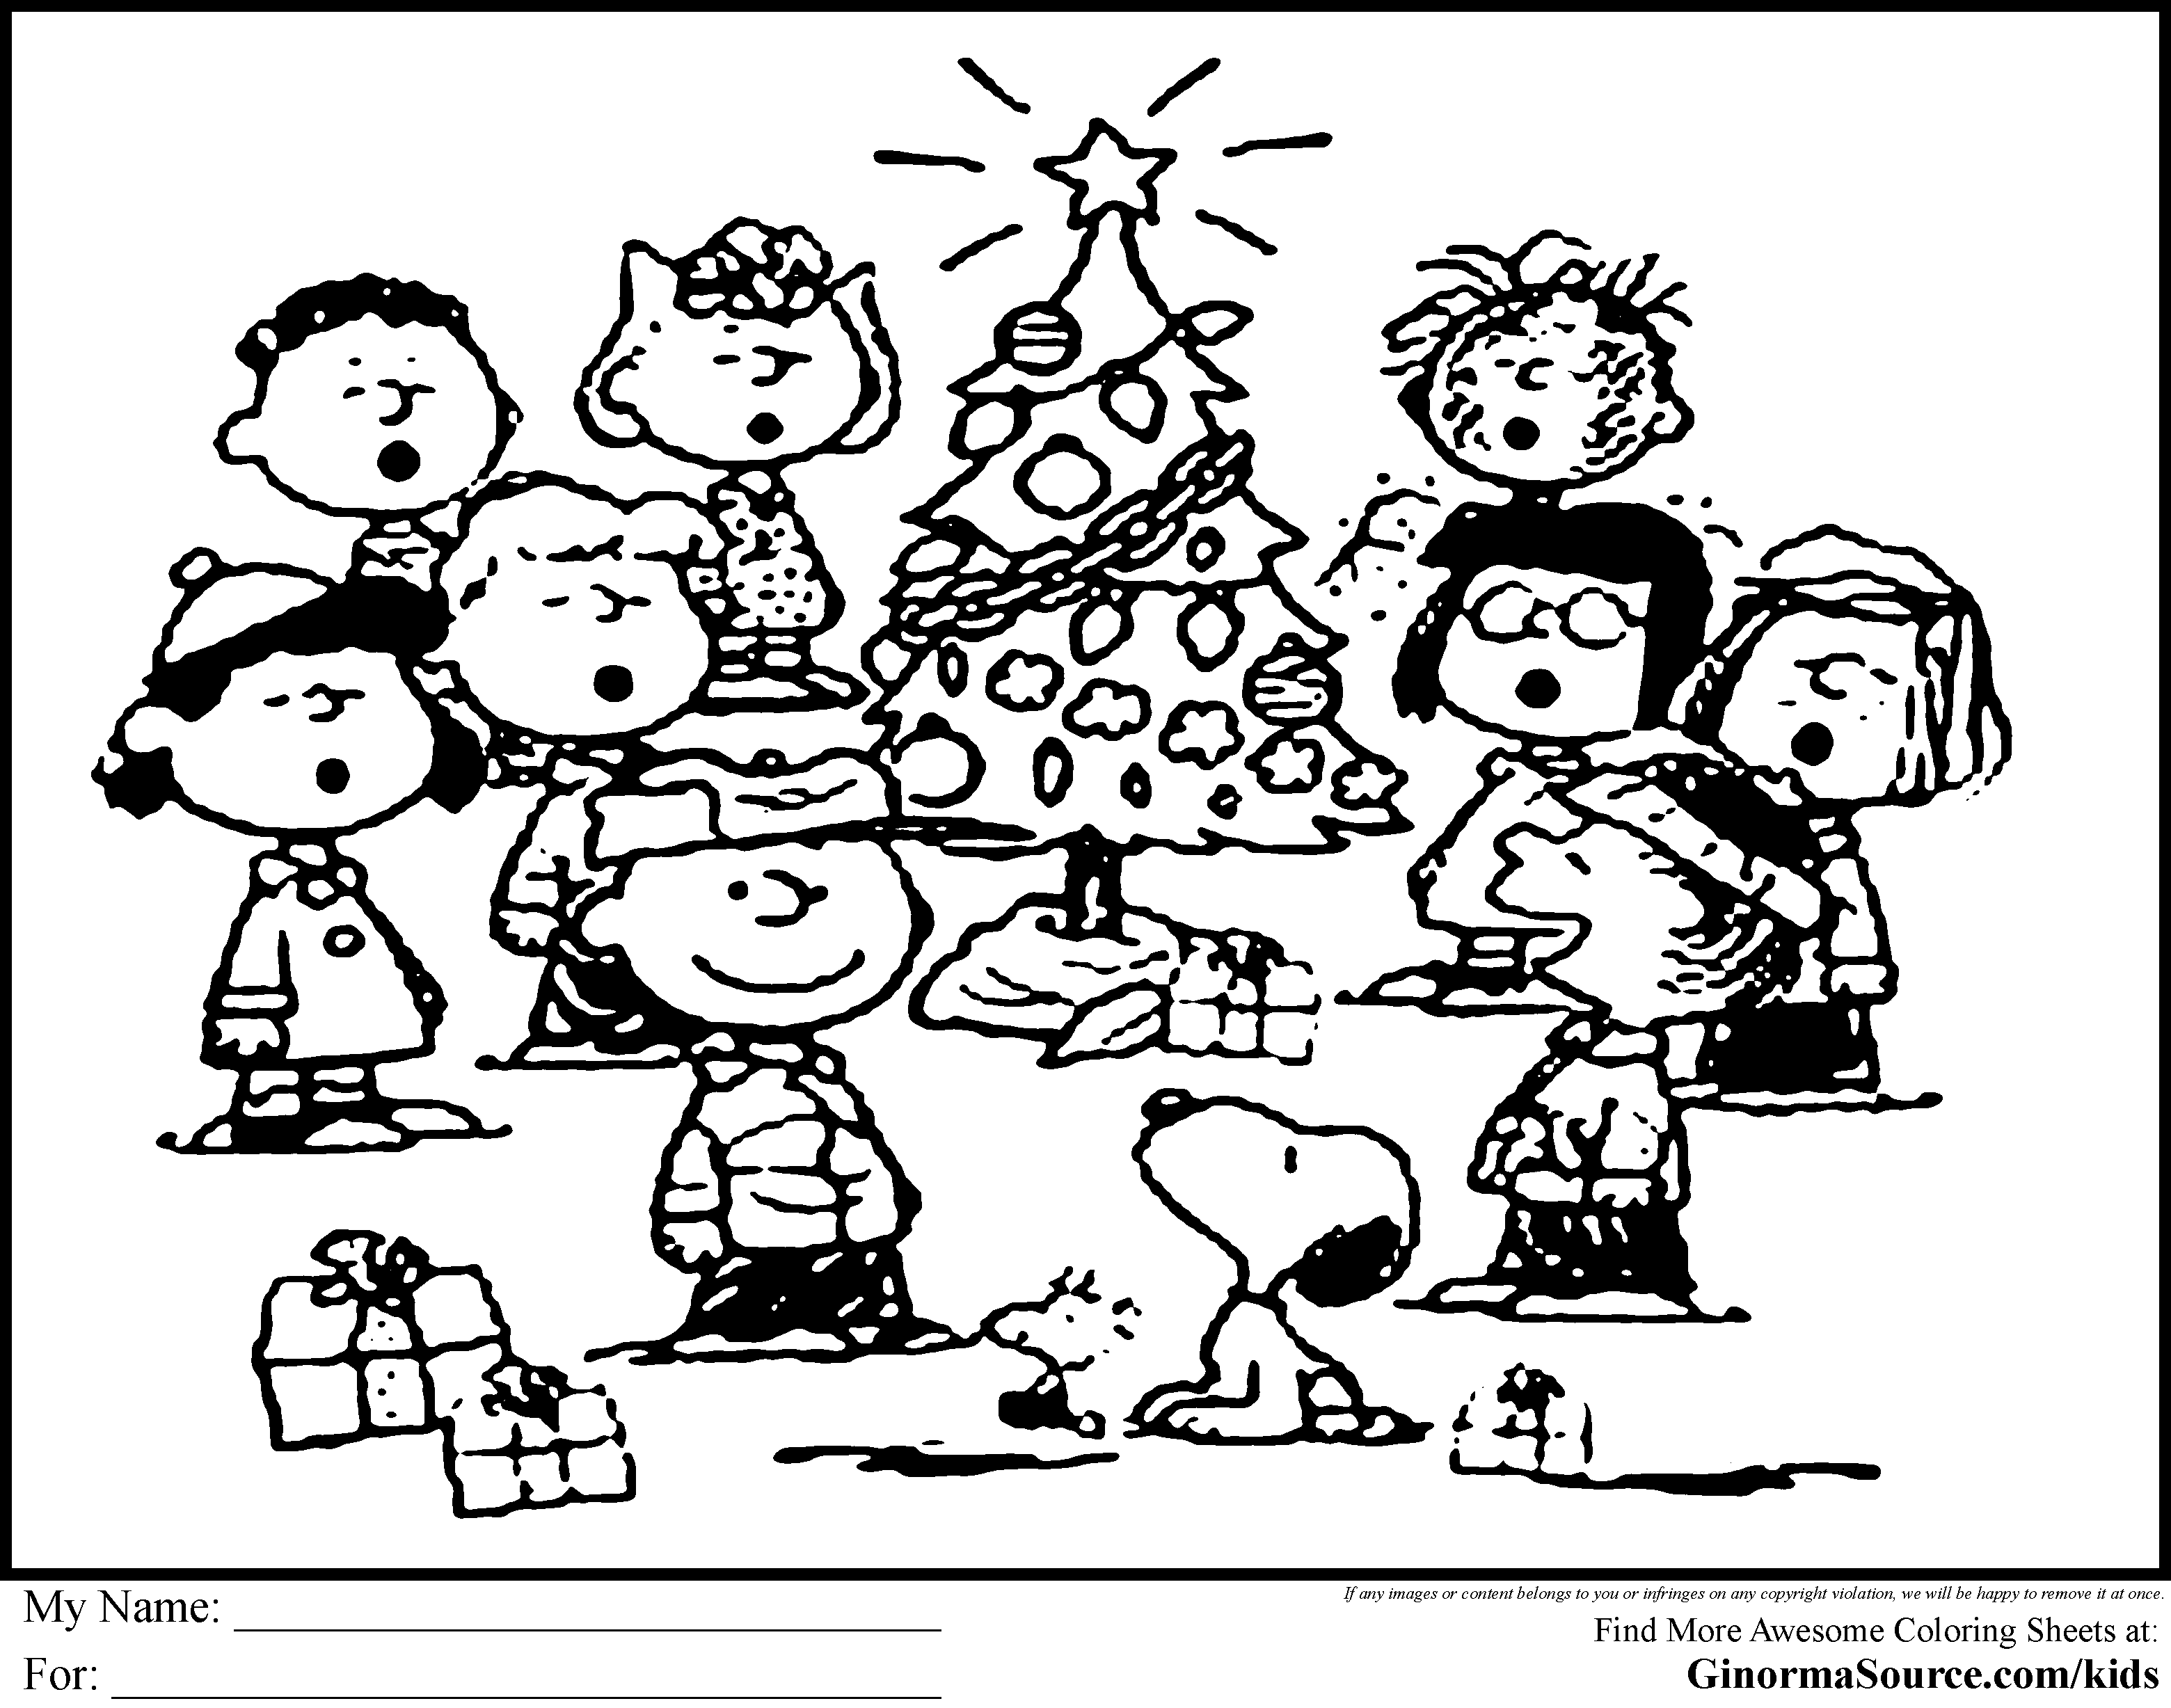 Christmas Coloring Pages For Grade 1 With Snoopy Clipart Printable 3120 X 2455 Dumielauxepices Net